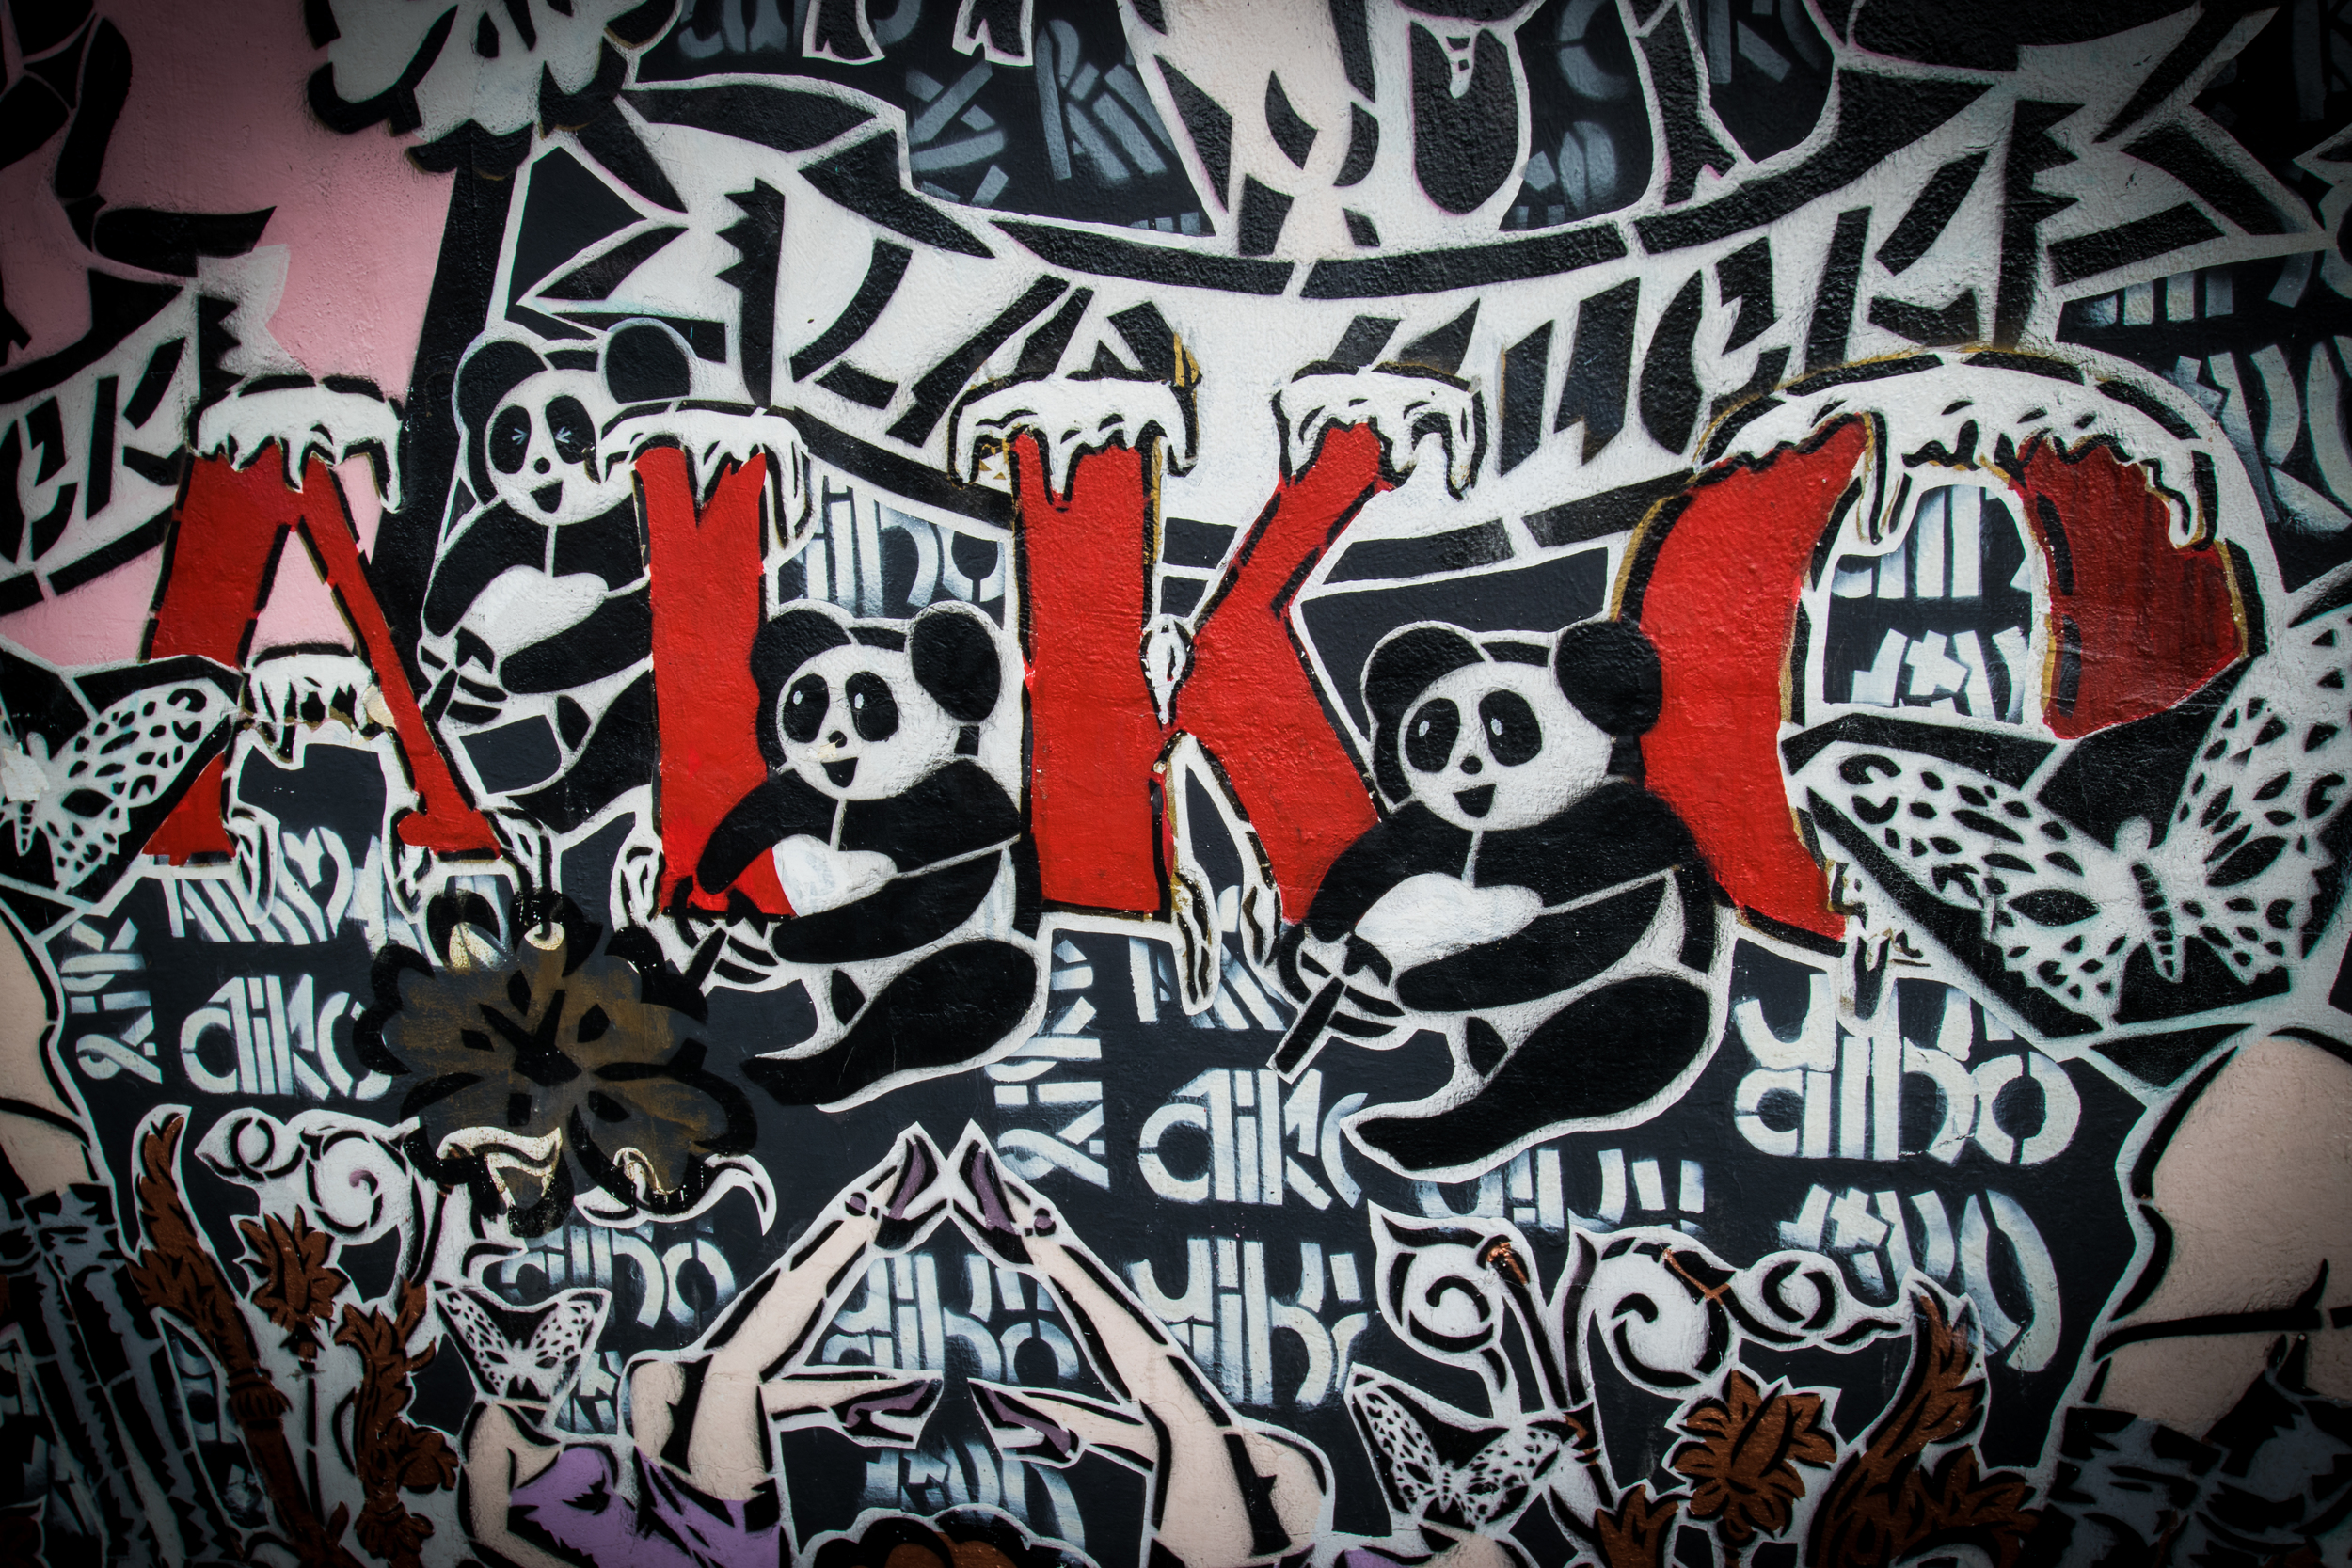 A small excerpt of the wall by Aiko from Tokyo, Japan